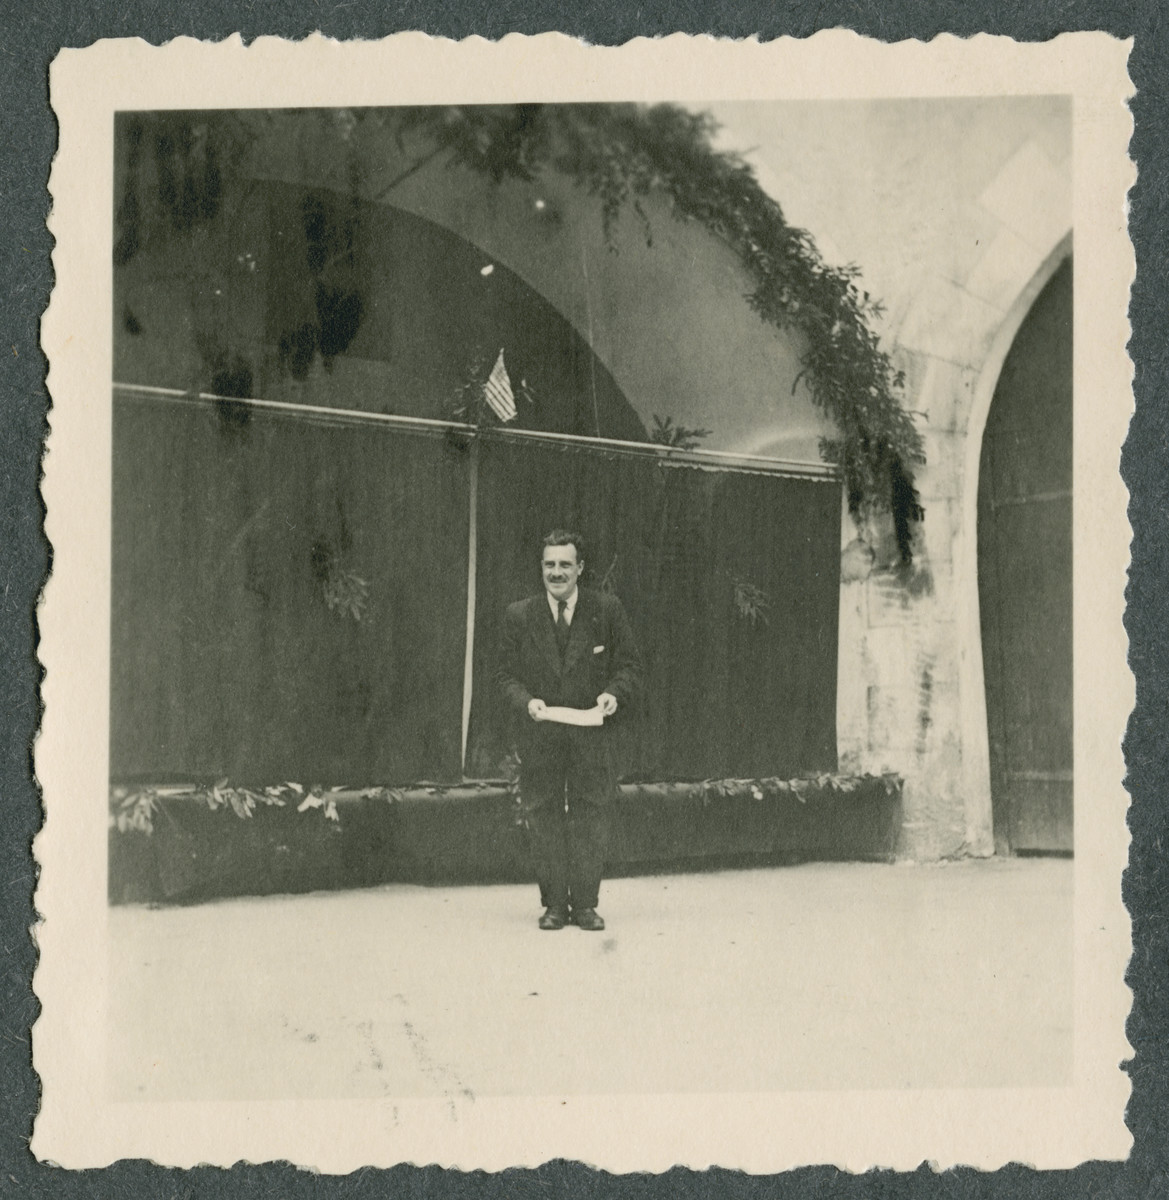 An unidentified prisoner stands underneath an American flag near the entrance to Tittmoning castle in preparation for one of the shows put on by prisoners.  Improvised stage curtains are behind him